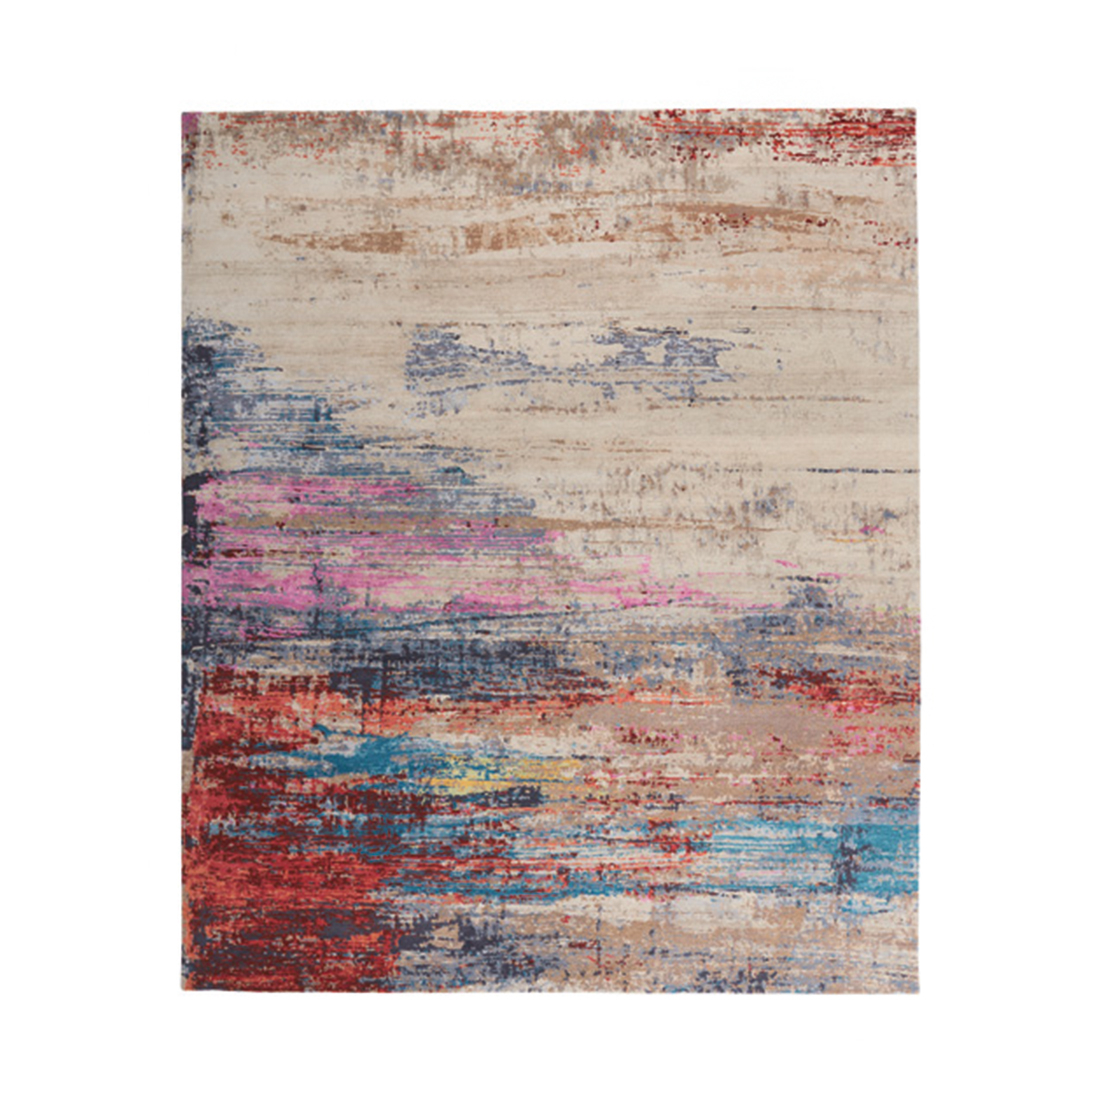 scott and cooner Contemporary Rugs: A Celebration of Design with Scott and Cooner Contemporary Rugs A Celebration of Design with Scott and Cooner 4